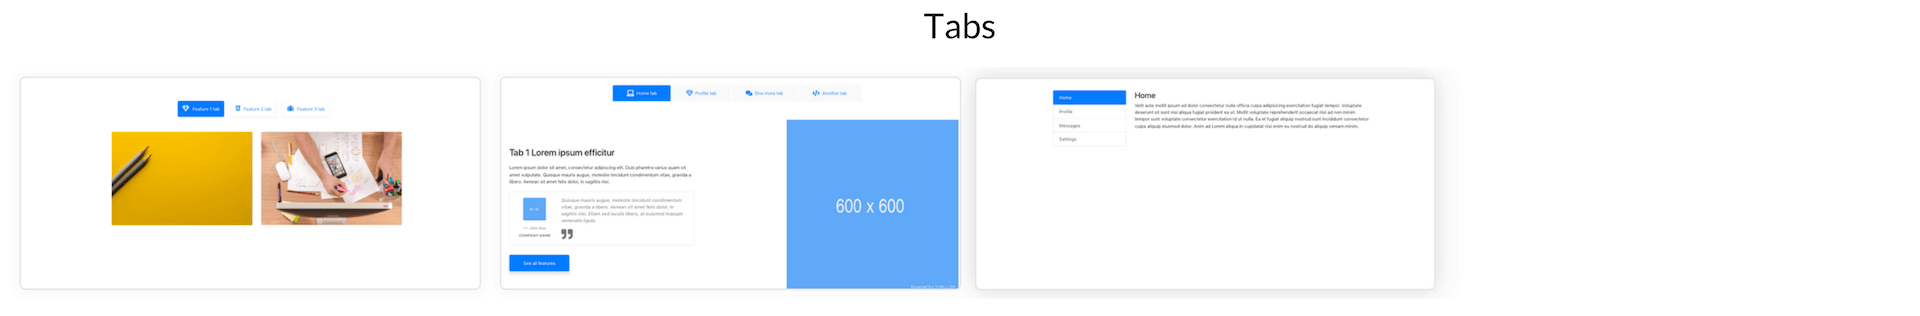 Elements Of Blueprints App, A Bootstrap Web Builder - Tabs